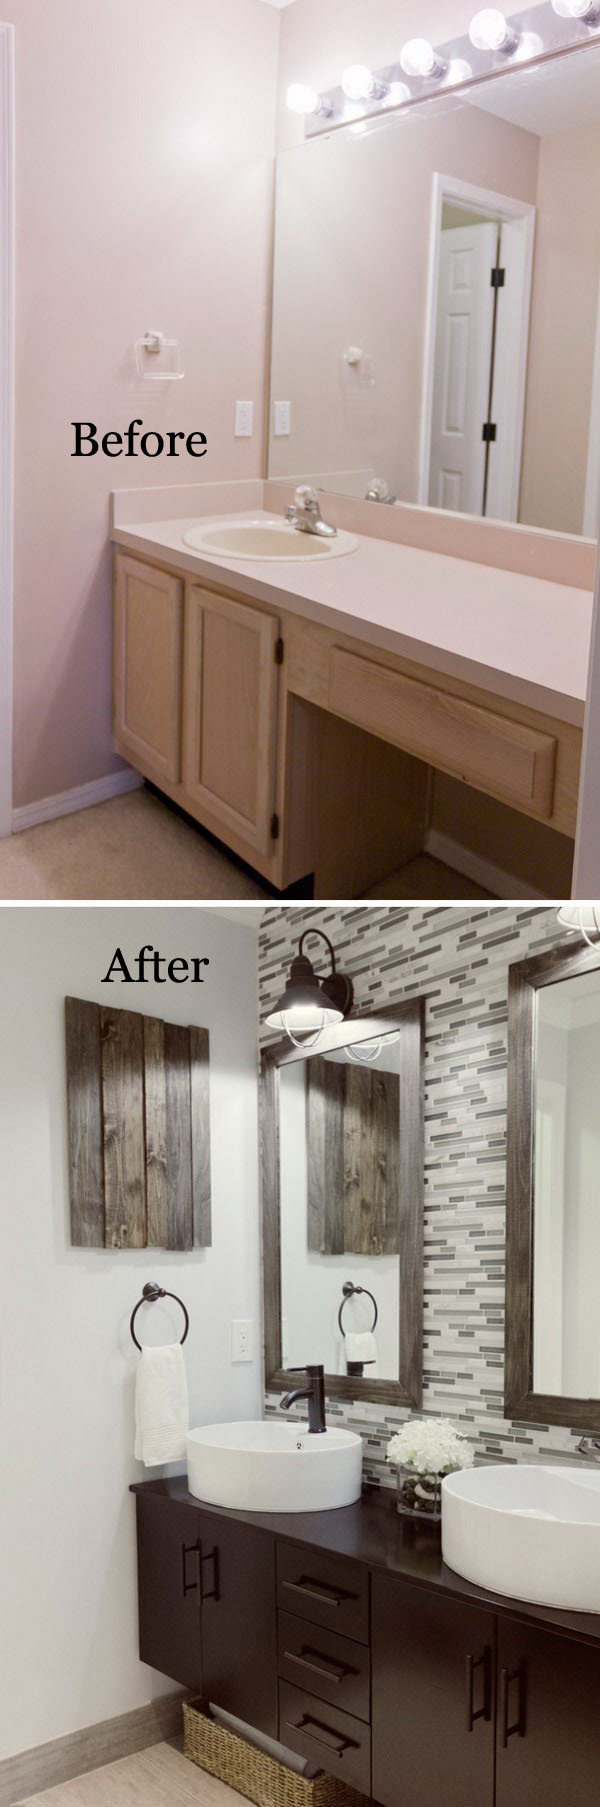 Before and after 20 awesome bathroom makeovers hative for Small bathroom renovations pictures